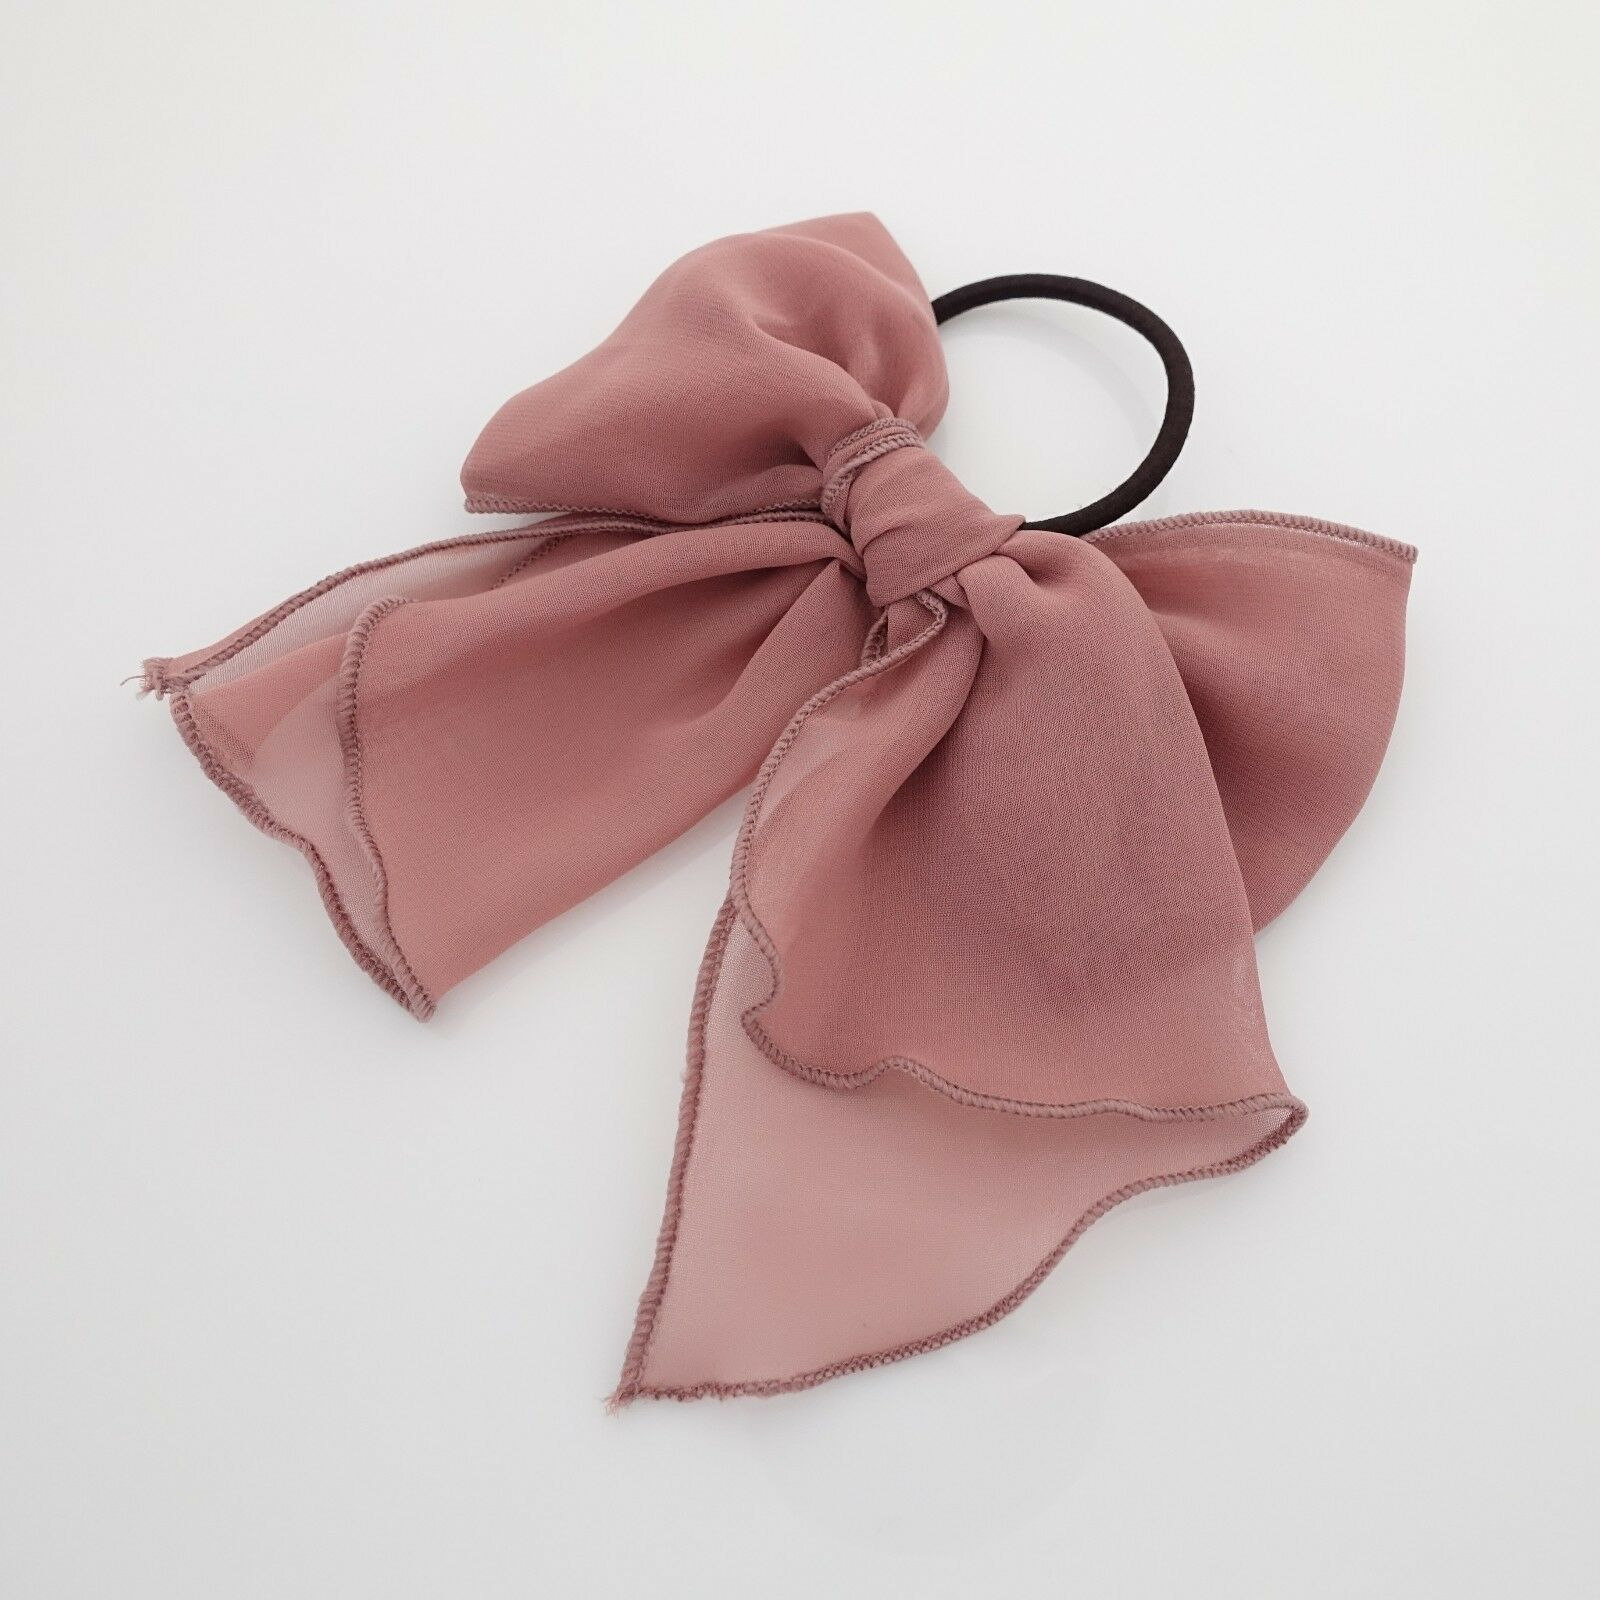 Details about Chiffon solid color bow knot hair tie elastic ponytail holder for women